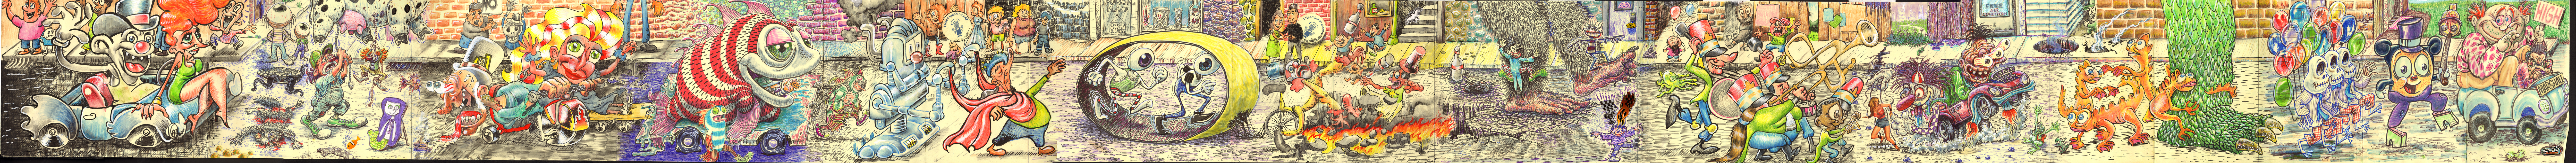 """""""Parade"""" An Exquisite Corpse by Eric Knisley and Marx Myth"""